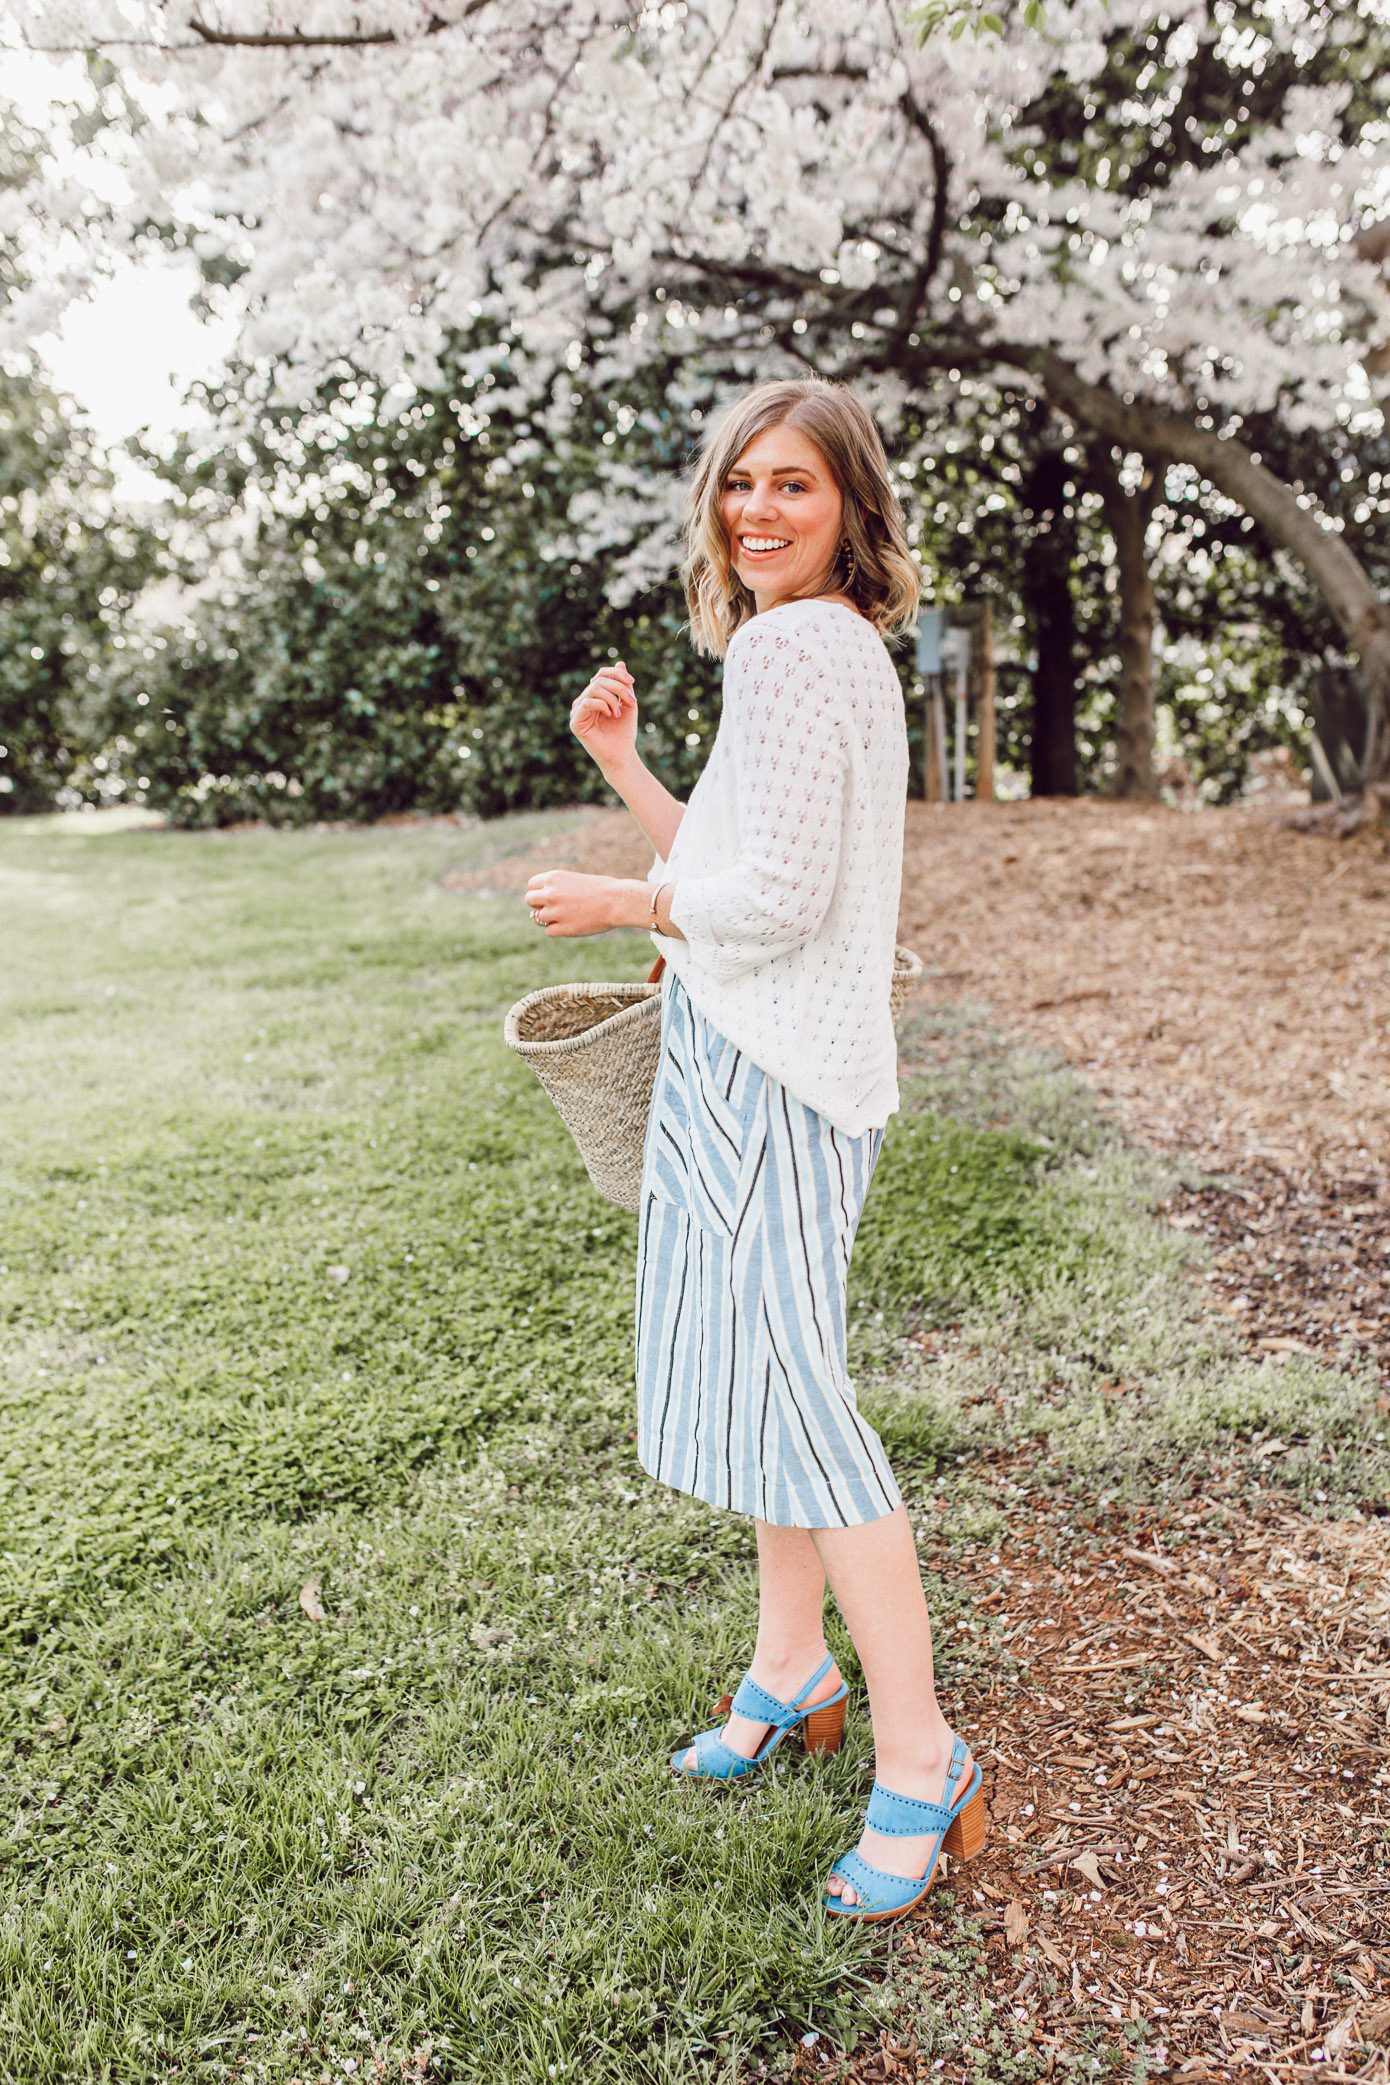 Laura Leigh Elliott shares her favorite sweater for spring | ft. Joseph A., Anthropologie, Ariat, and Terrain | Louella Reese